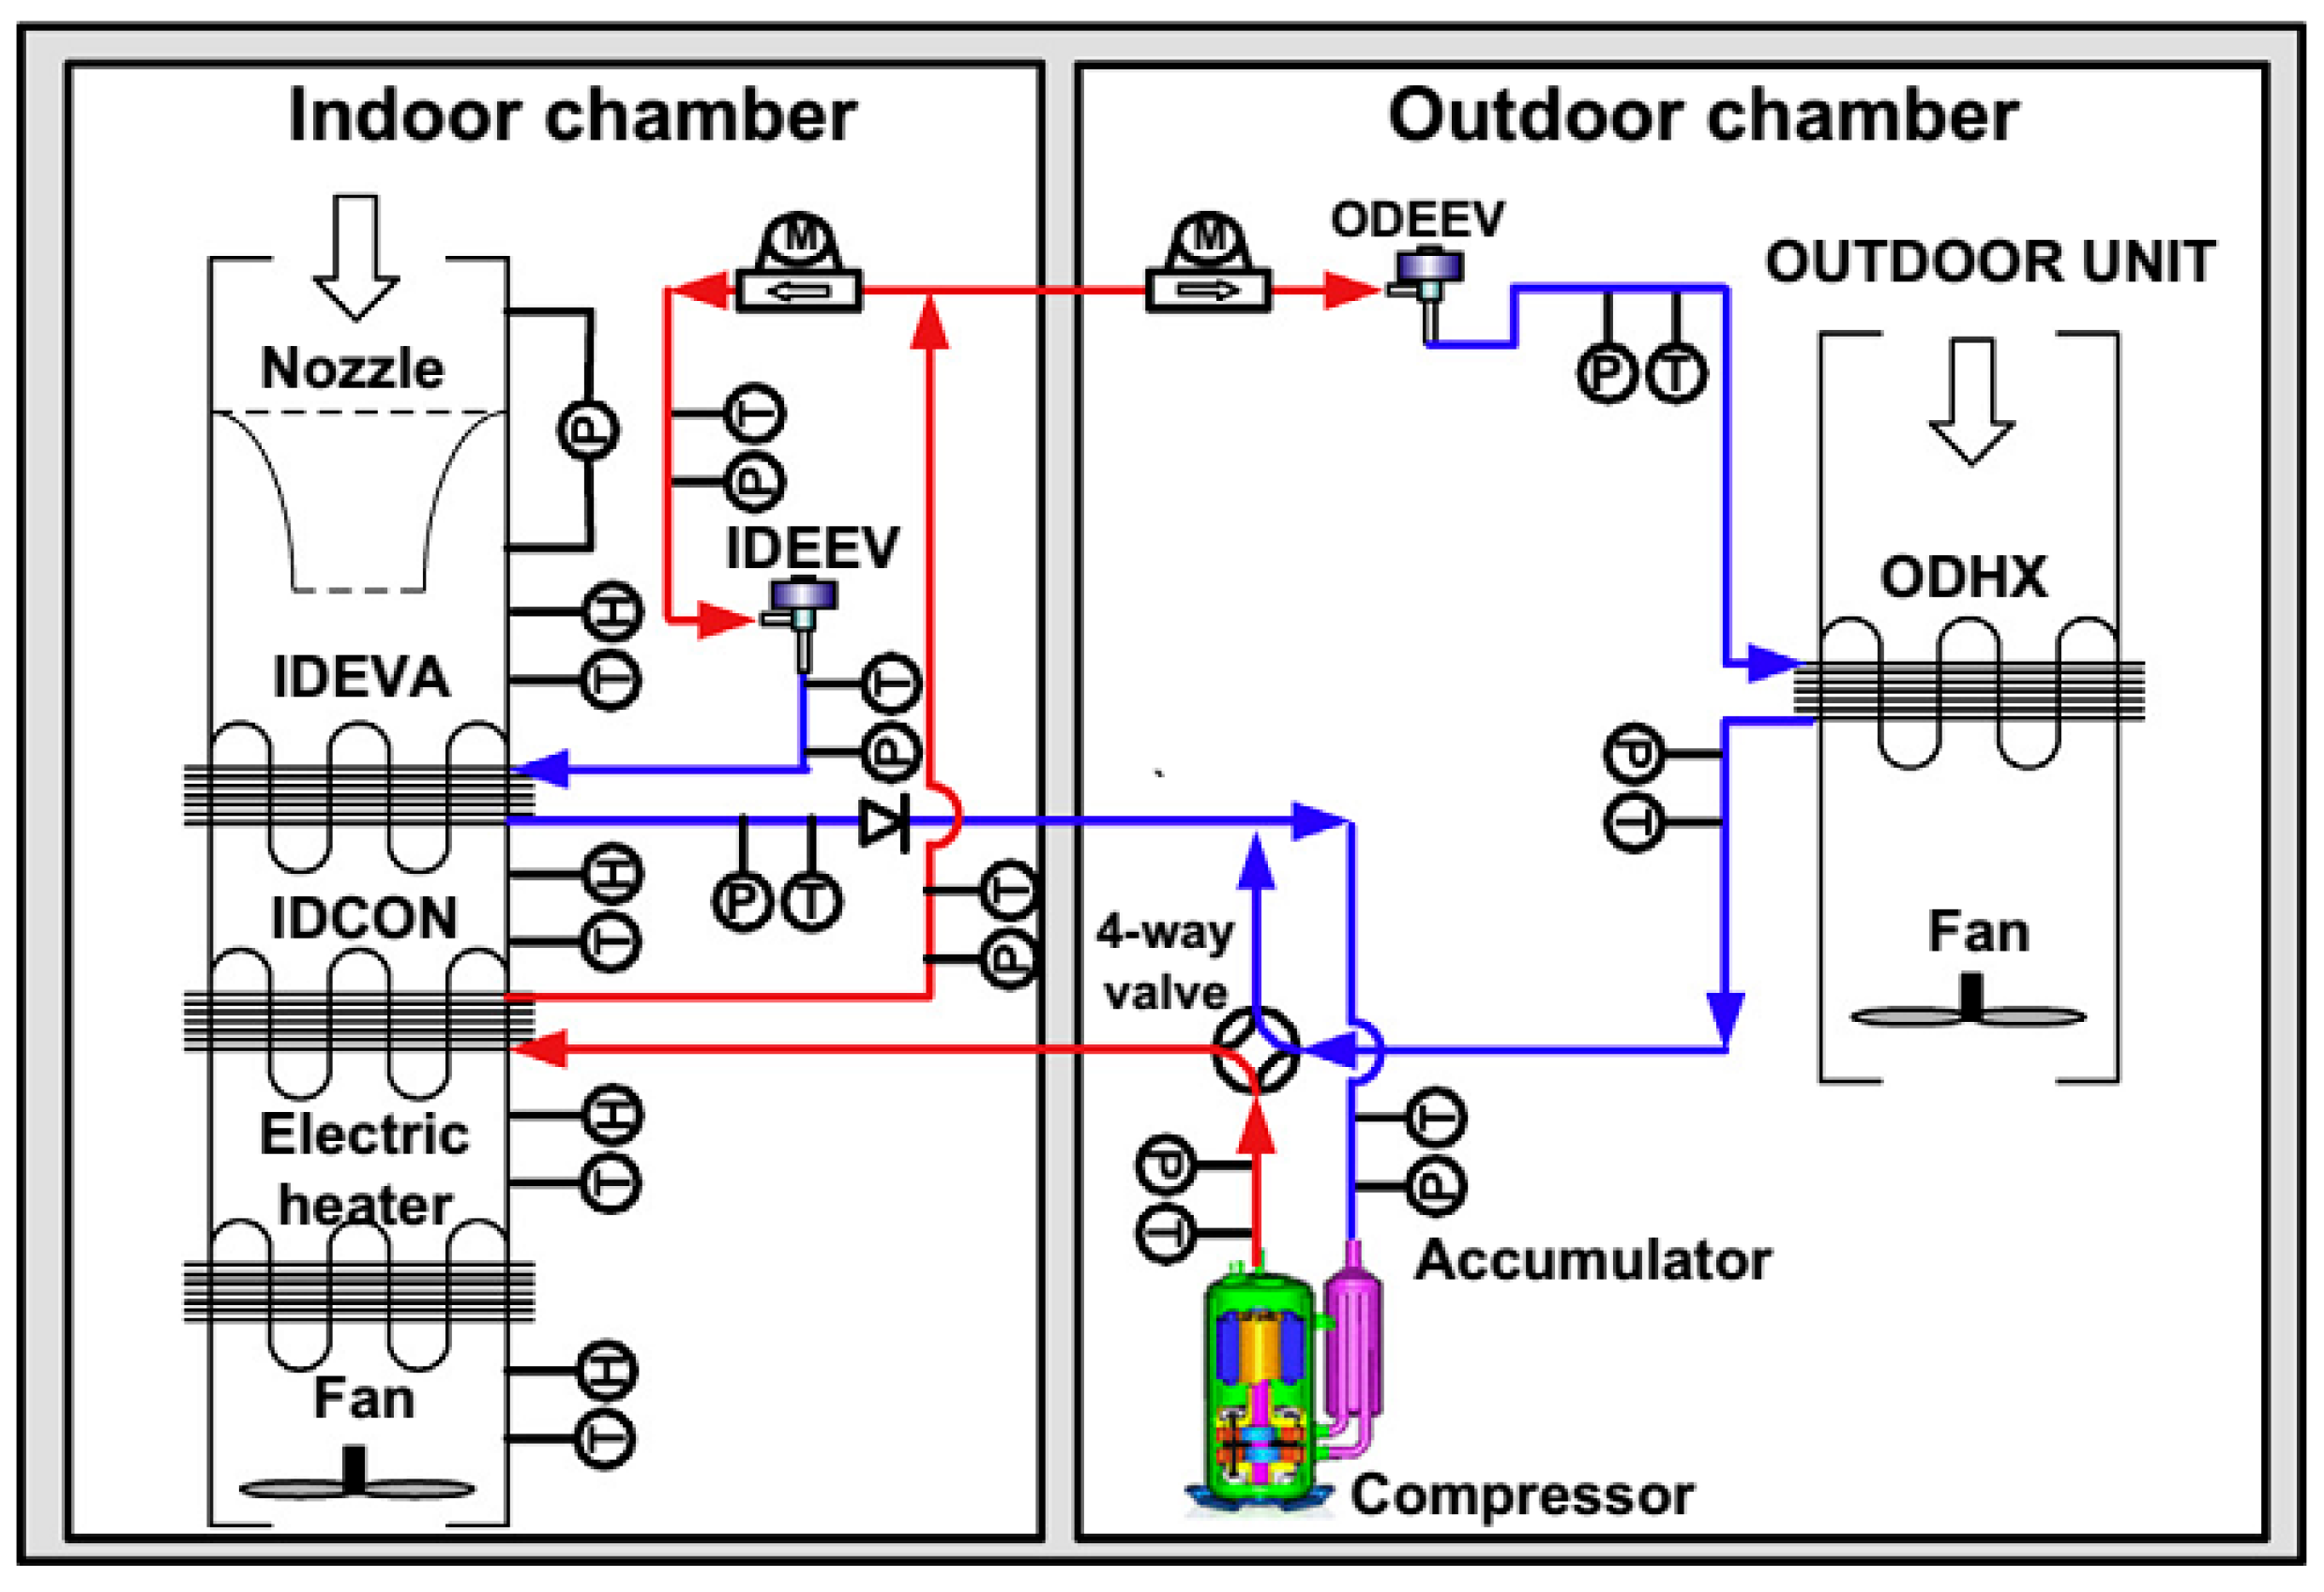 Energies | Free Full-Text | Progress in Heat Pump Air ... on electric heat wiring schematics, electric heater parts, 220 single phase wiring diagram, goodman heat sequencer wire diagram, heater symbol on diagram, 240 volt switch wiring diagram, electric heater thermostat wiring, heater wiring diagram, water heater diagram, electric baseboard thermostat wiring diagram, electric heater troubleshooting, monitor heater parts diagram, electric heater resistor diagram, electric furnace diagram, electric water heater thermostat schematic, electric heater relay, electric heater flow chart, electric heater switch, electric heater schematic symbol, basic electric circuit diagram,